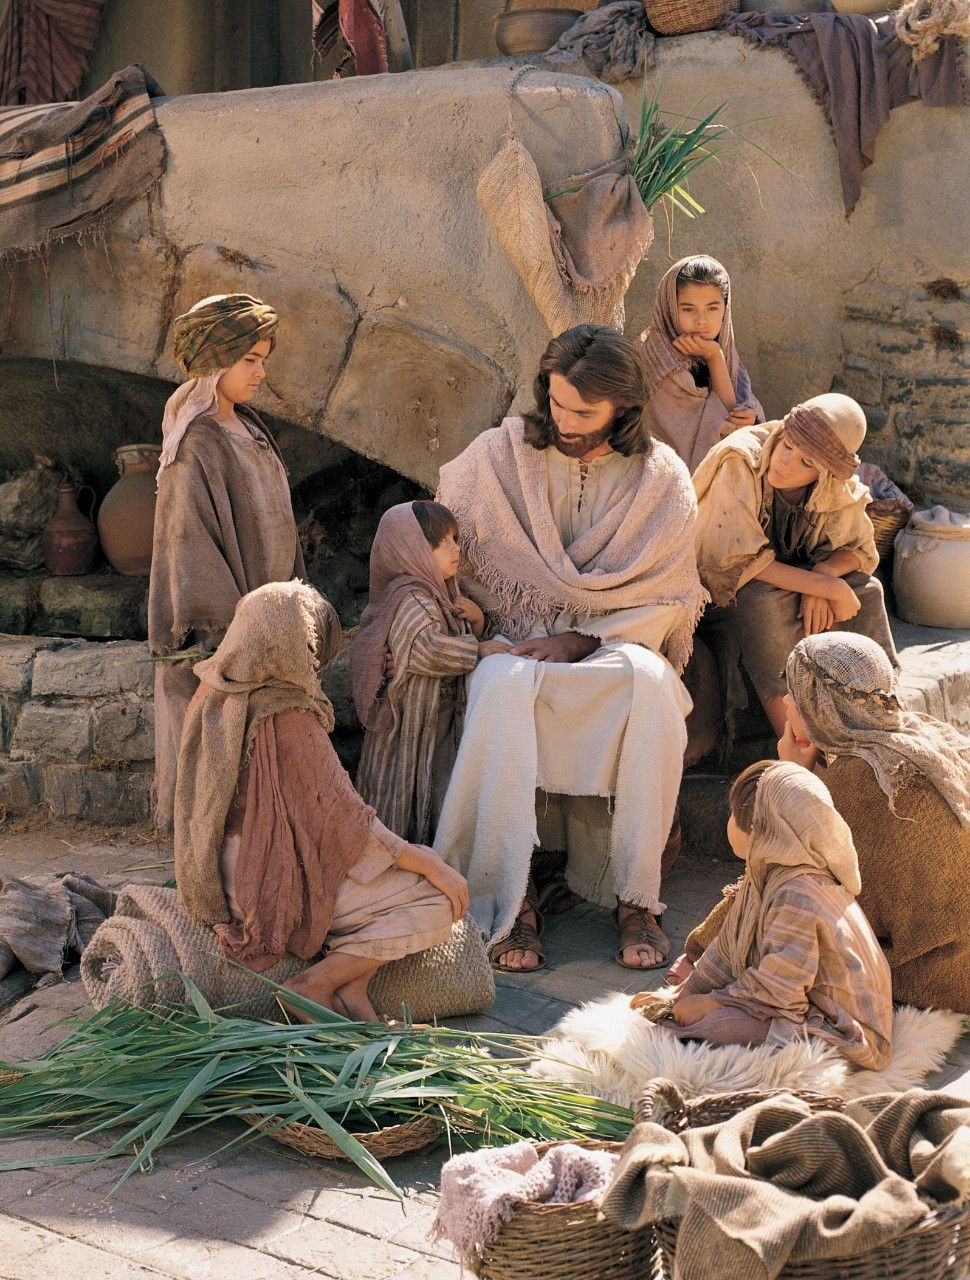 A reenactment showing Christ sitting with a group of children.